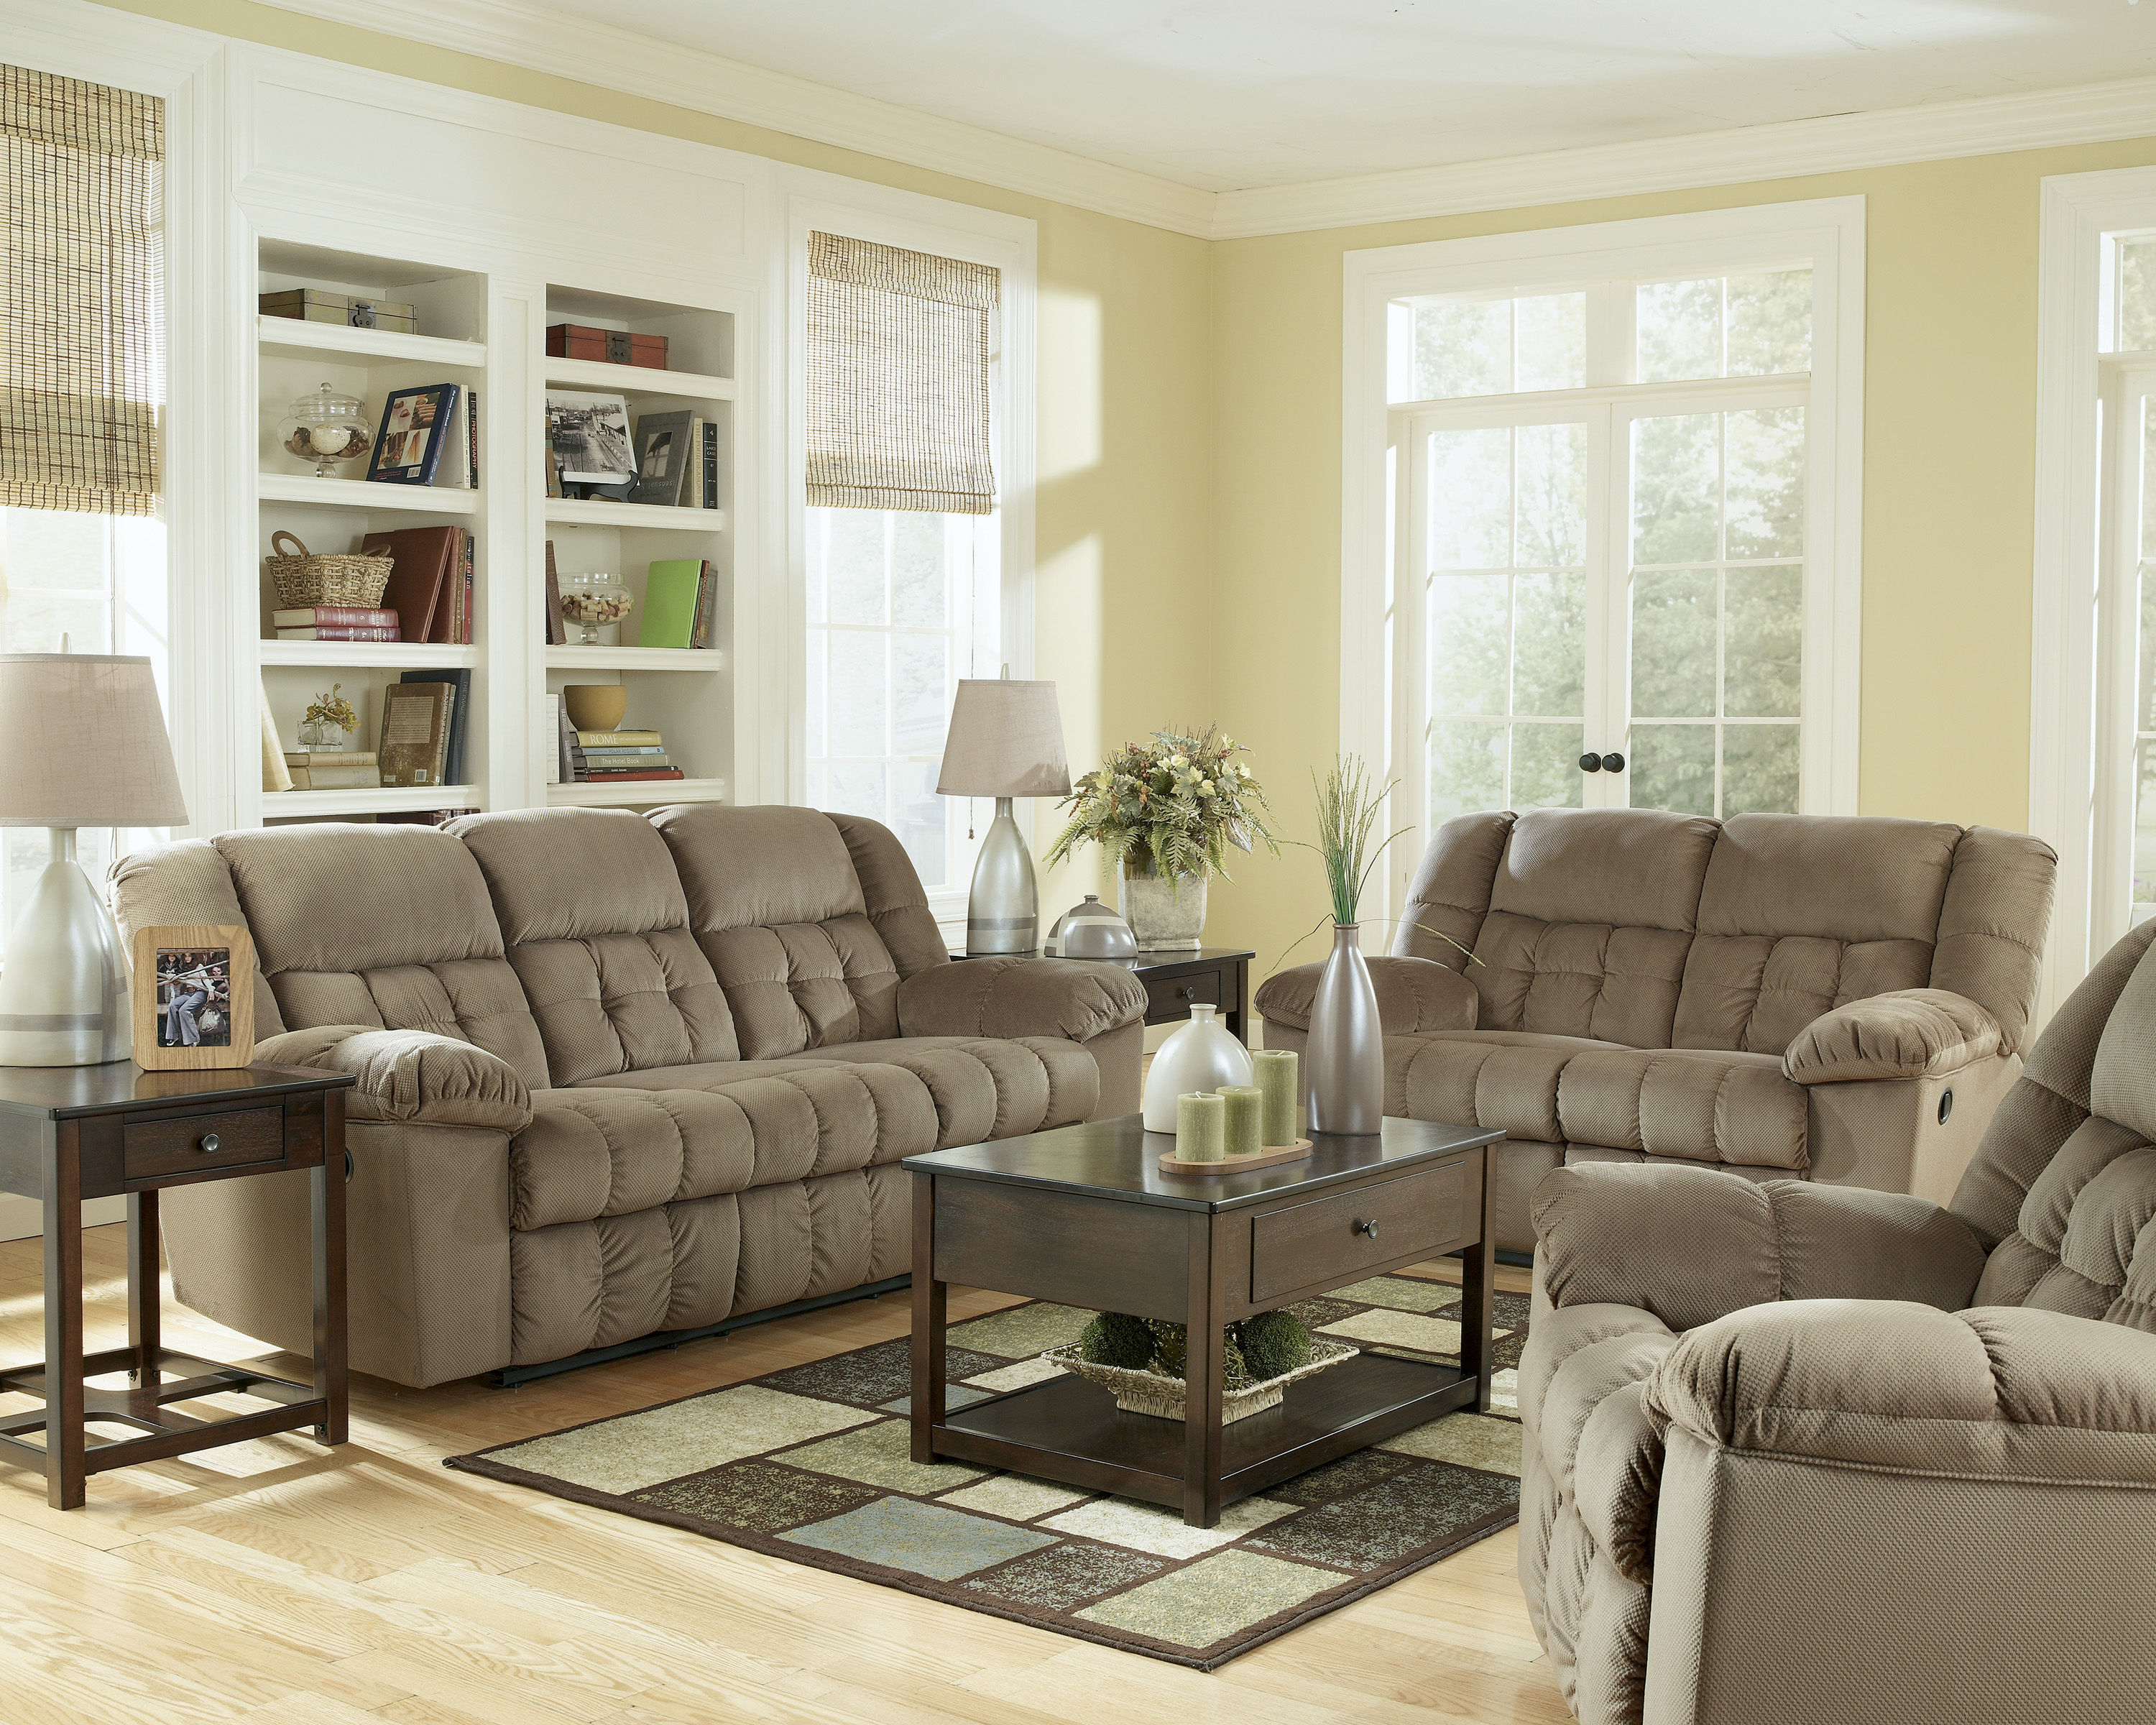 Lowell 3 pc living room set the classy home for 3 pc living room set